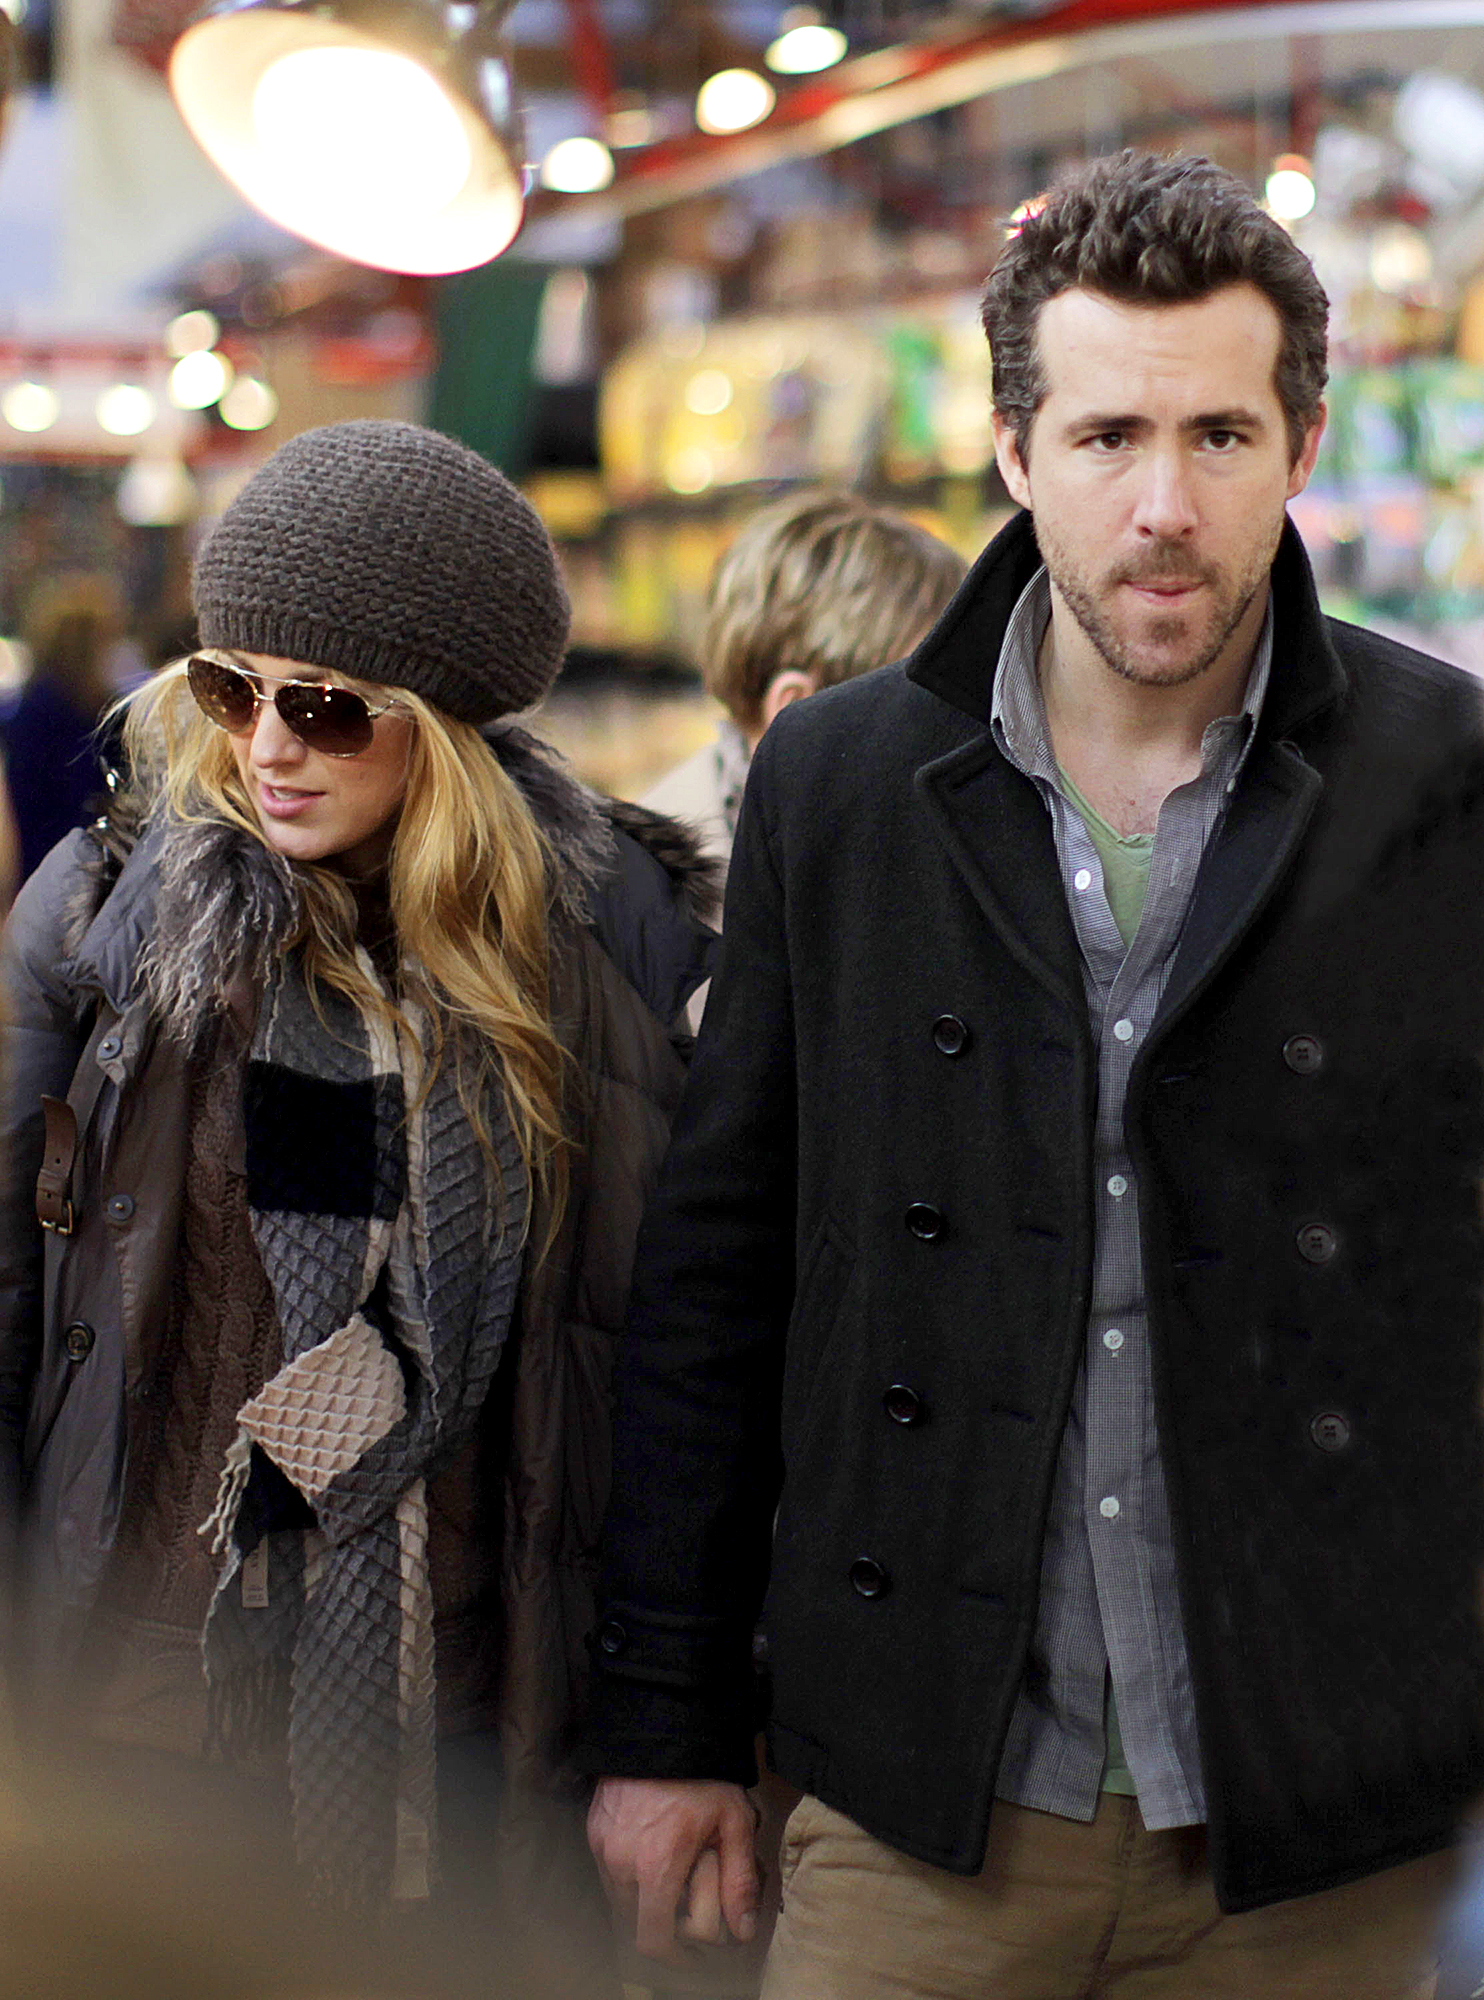 Blake-Lively-Ryan-Reynolds-December-12,-2011 - The couple spent the holidays with Reynolds' family in Vancouver, Canada. They held hands while walking through the Granville Island Public Market.